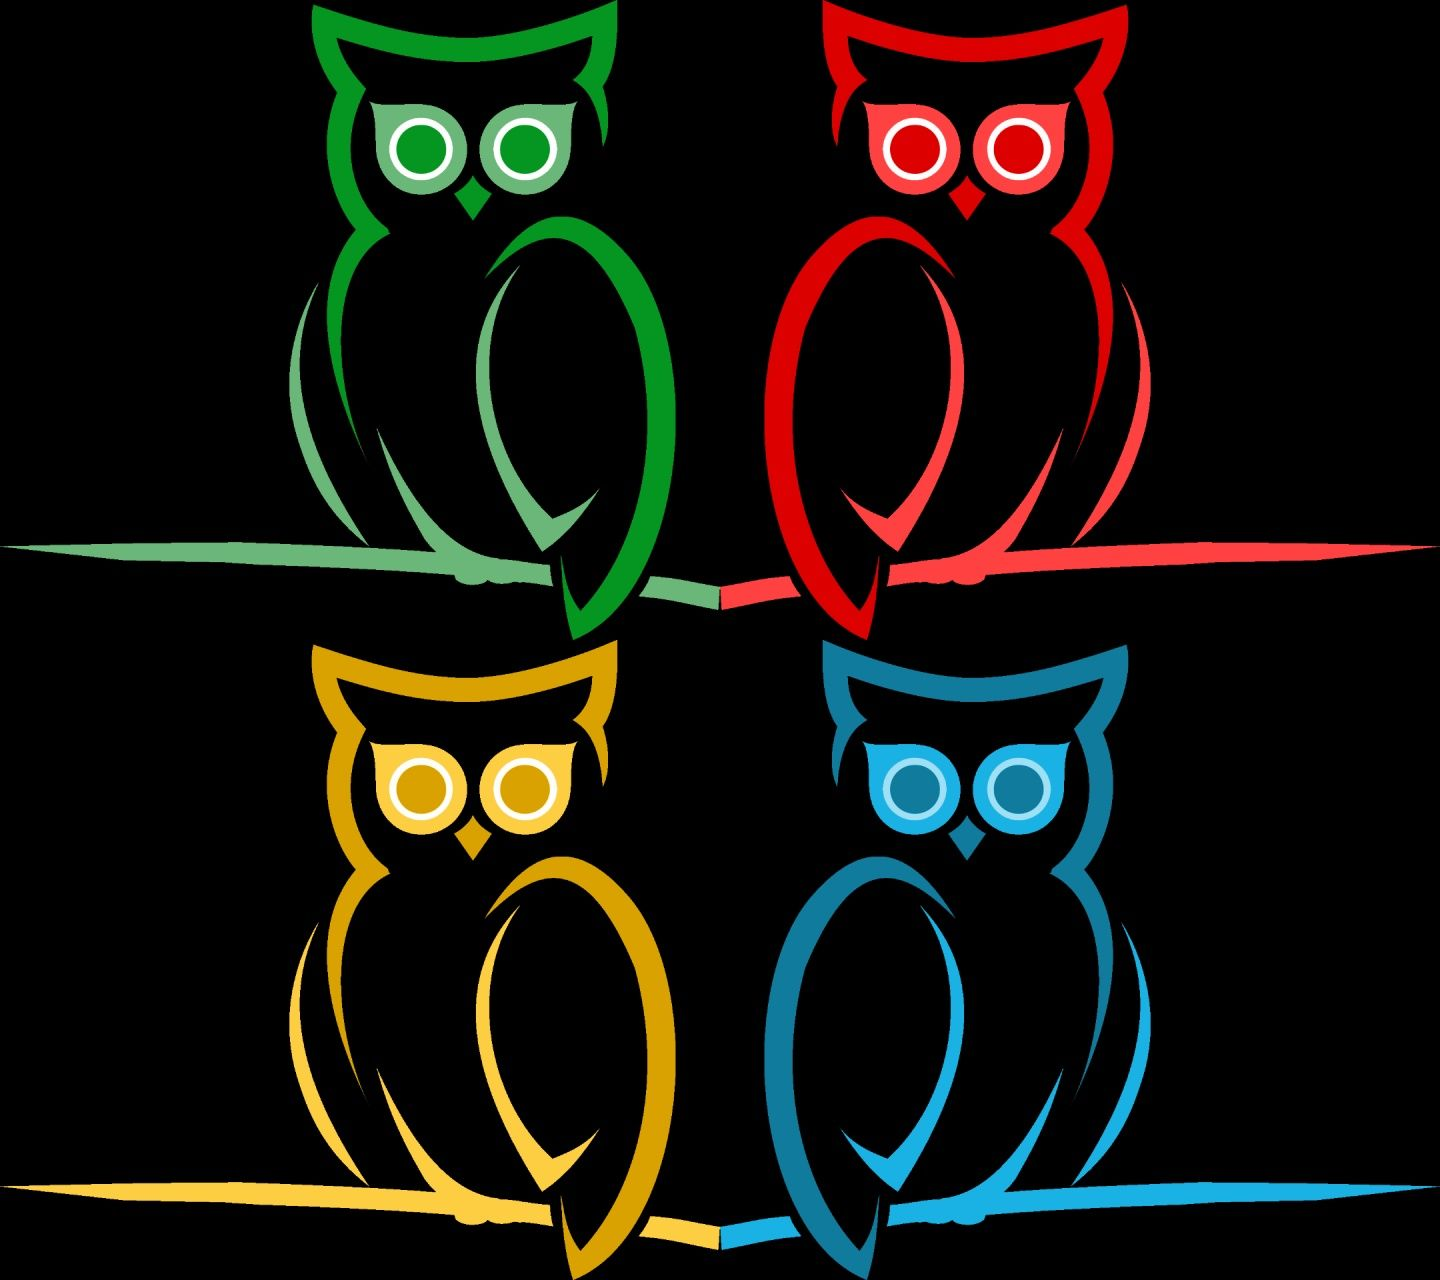 92 4K UHD Wallpaper Cell Phone Owl Suggestion Gtgtgt Best